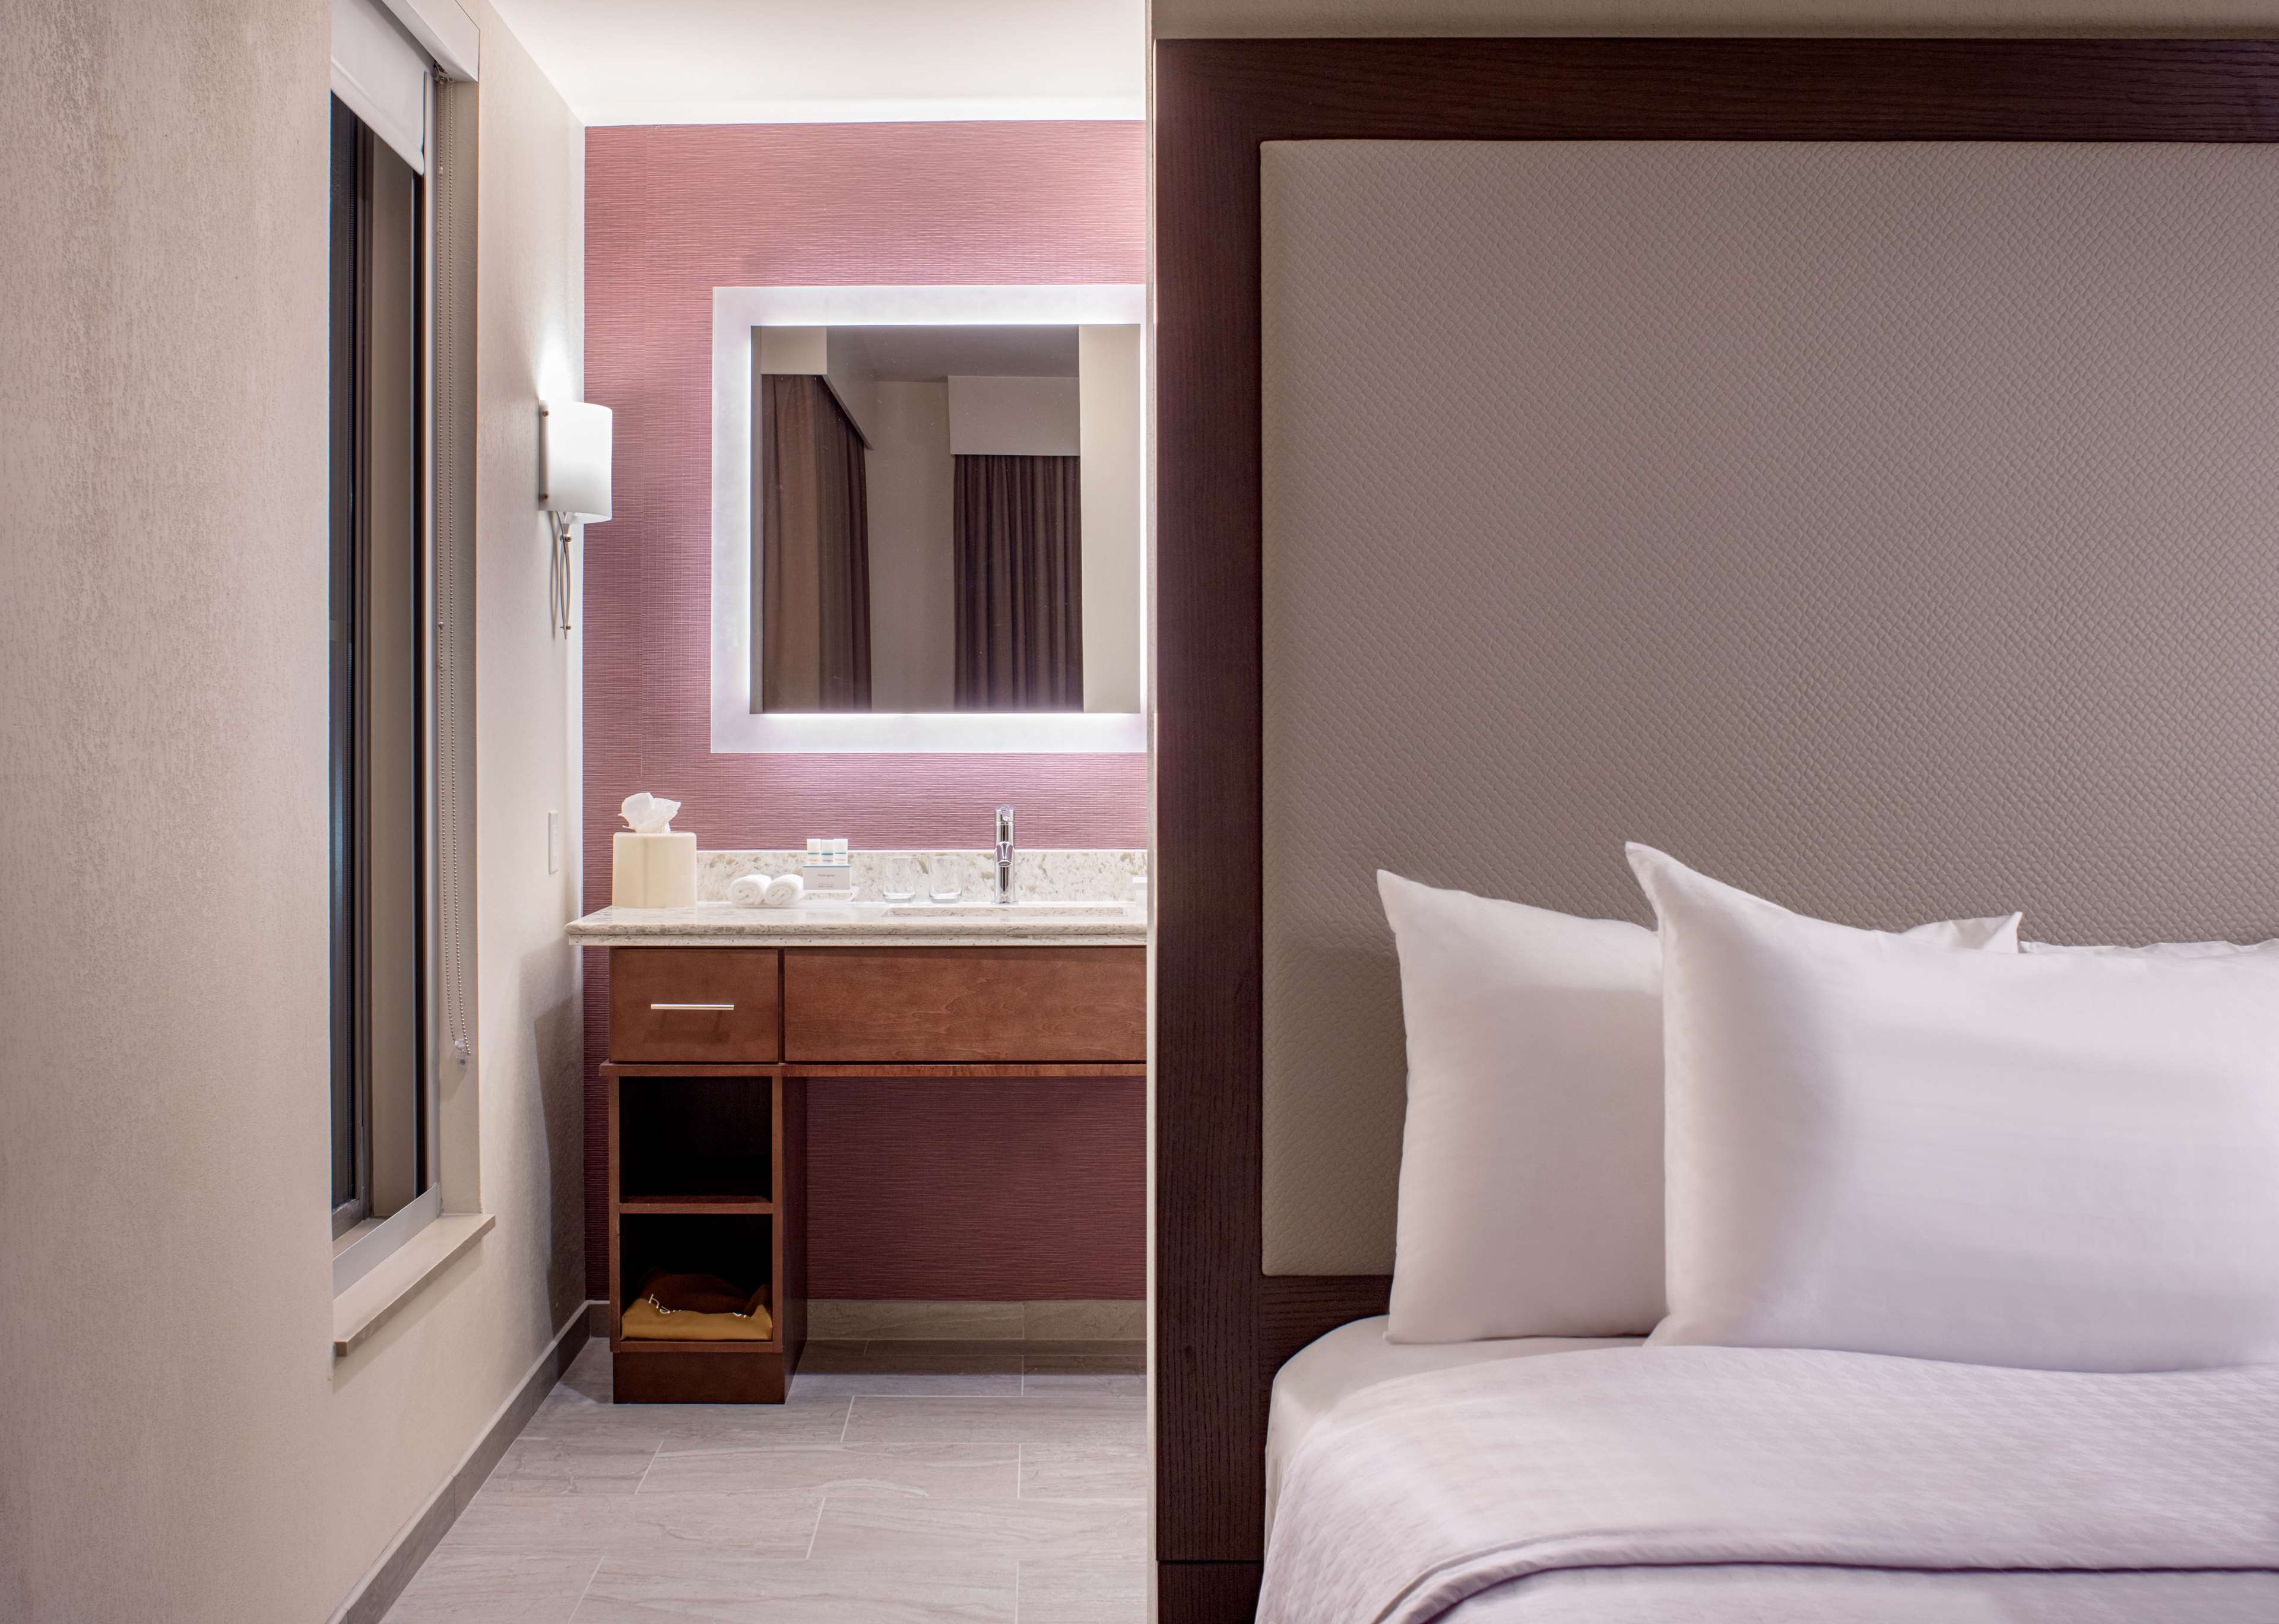 Homewood Suites by Hilton New Orleans French Quarter image 50